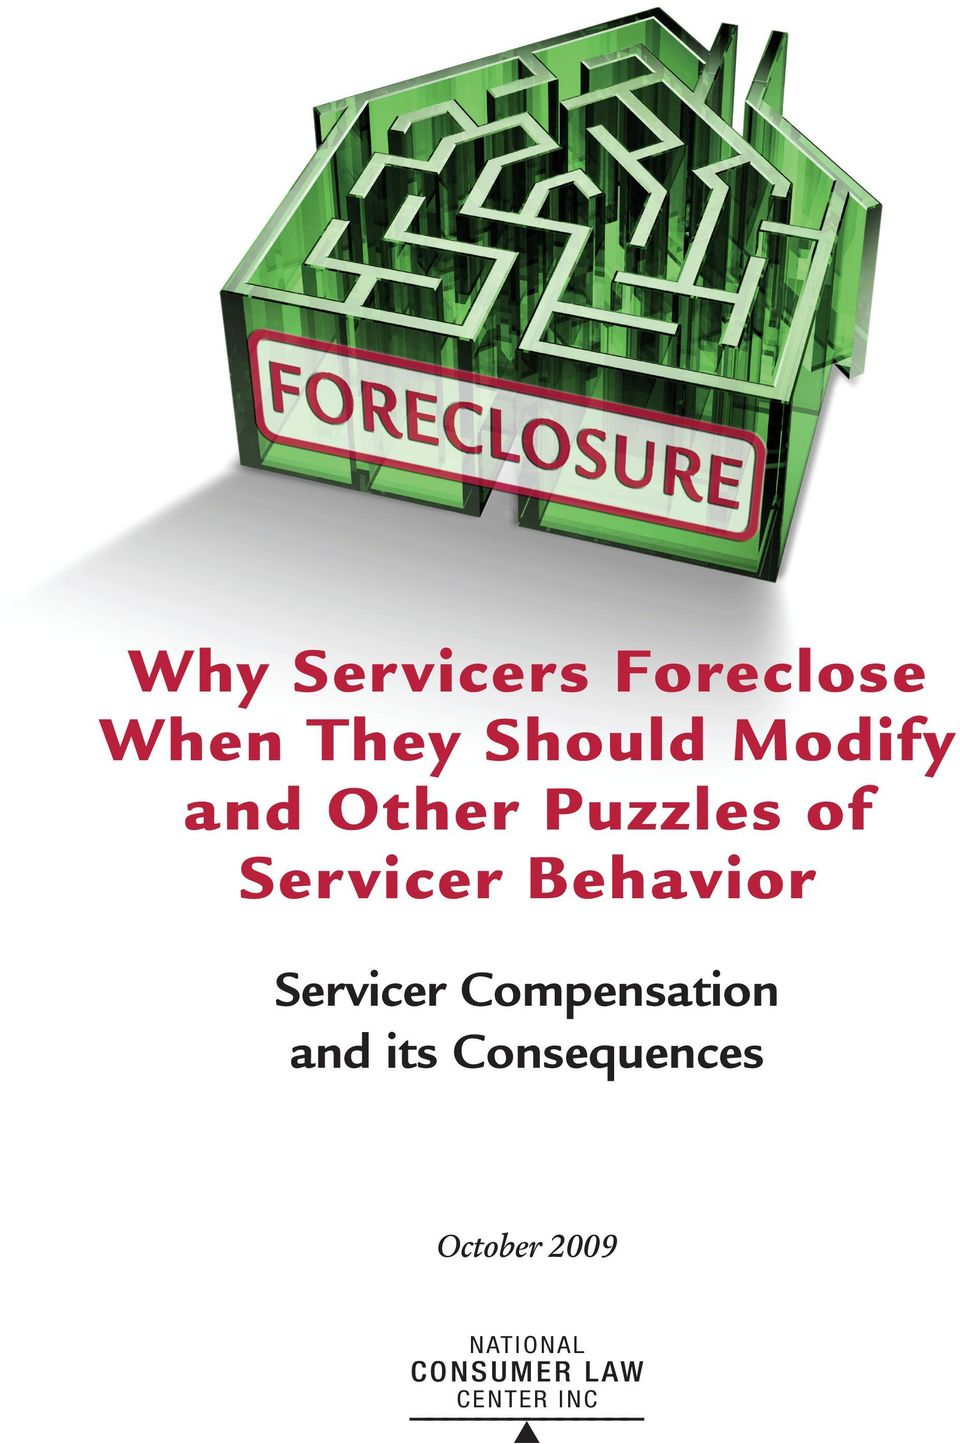 Behavior Servicer Compensation and its